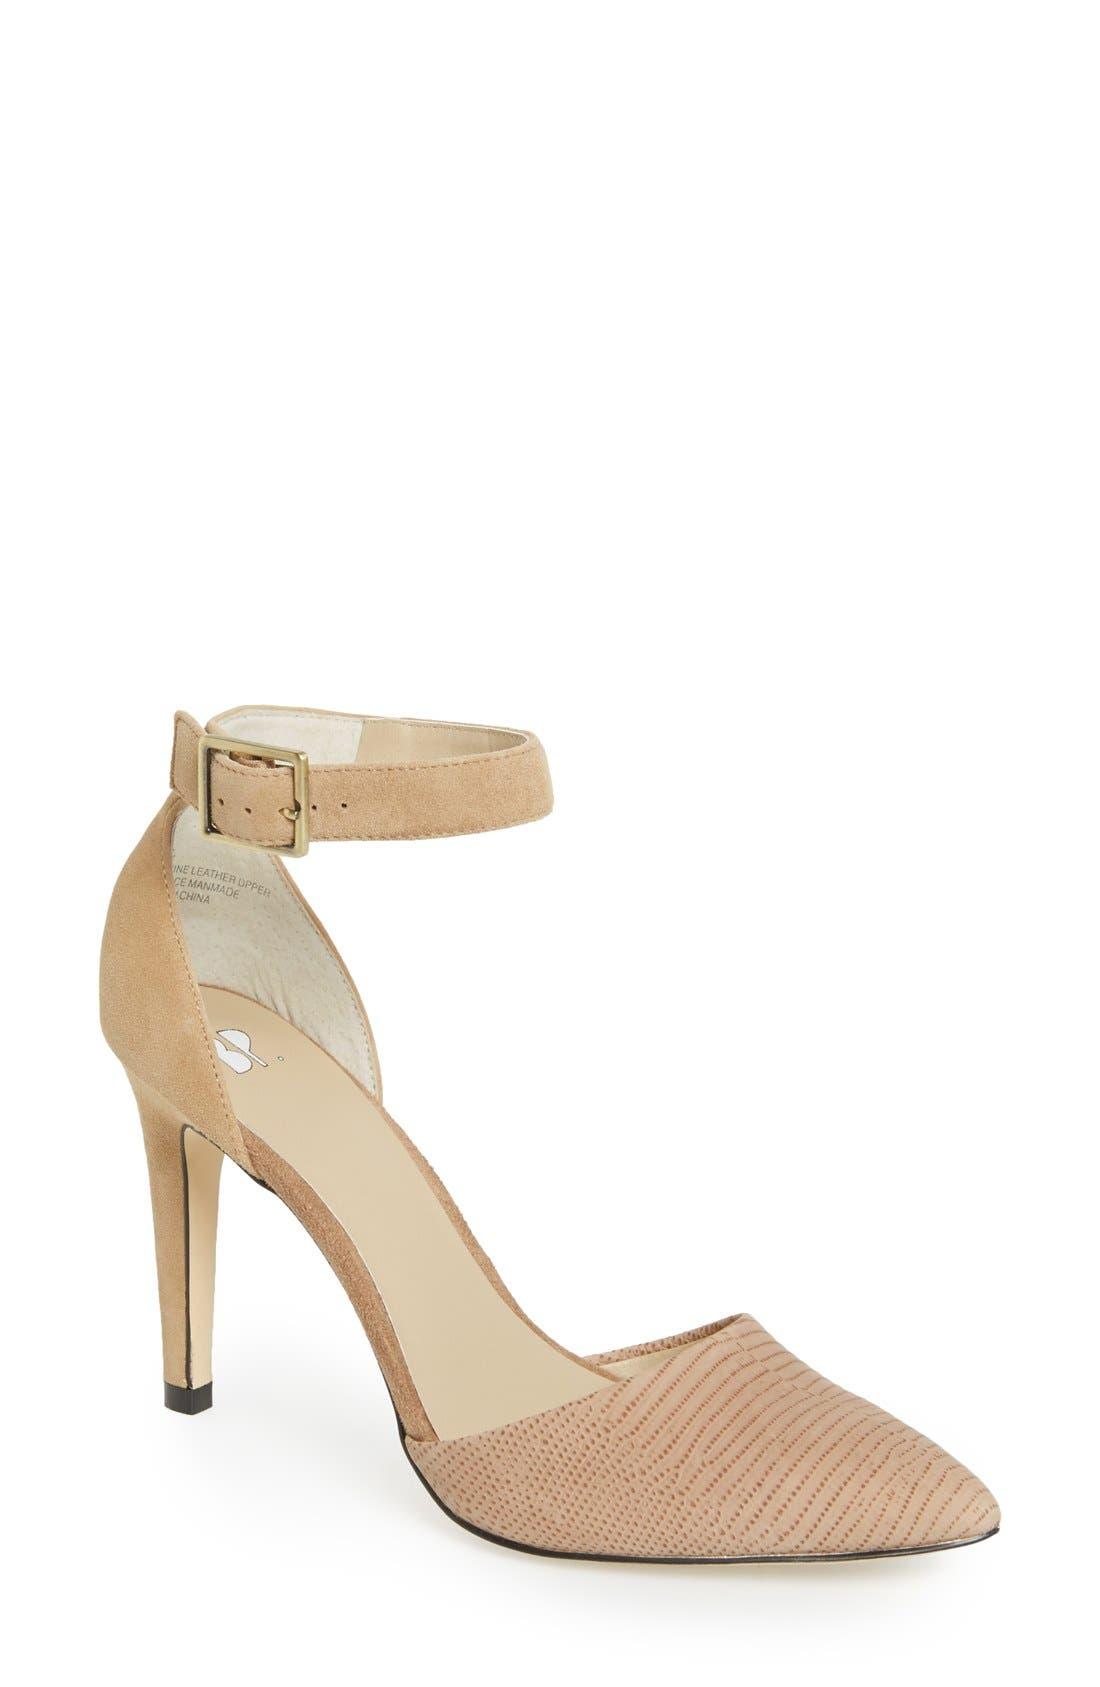 Alternate Image 1 Selected - BP. 'Mallory' Ankle Strap Pump (Women)